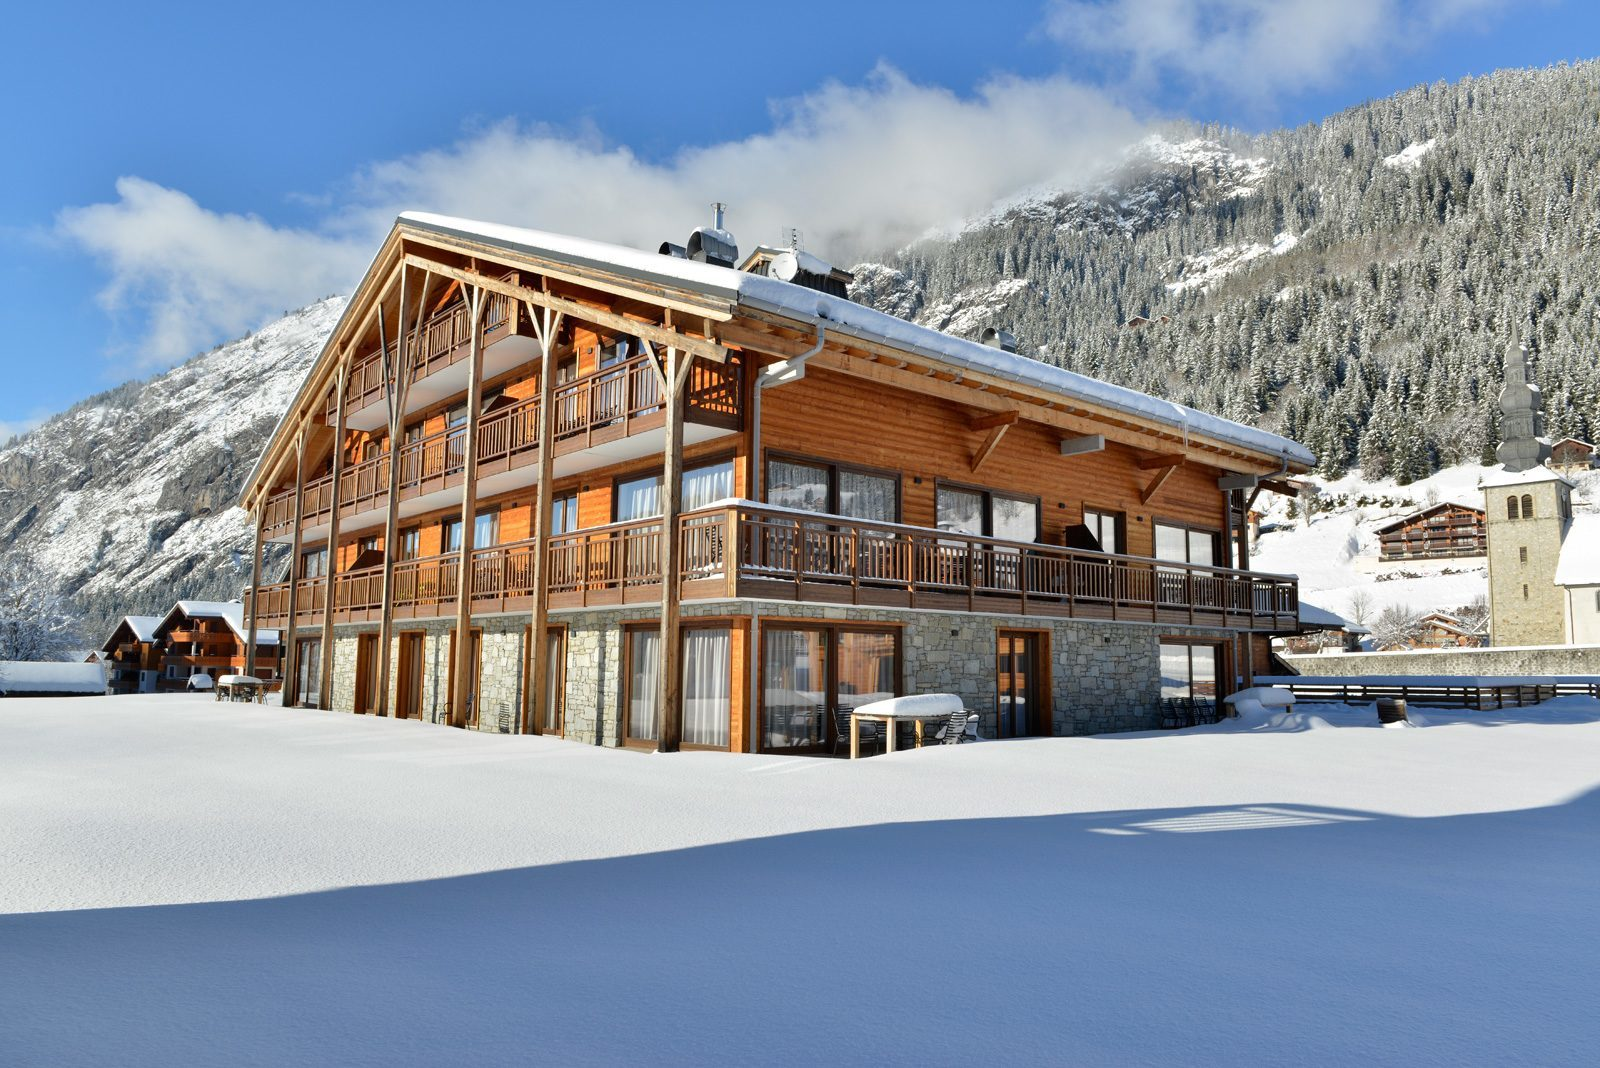 Grands appartements à 150m des pistes